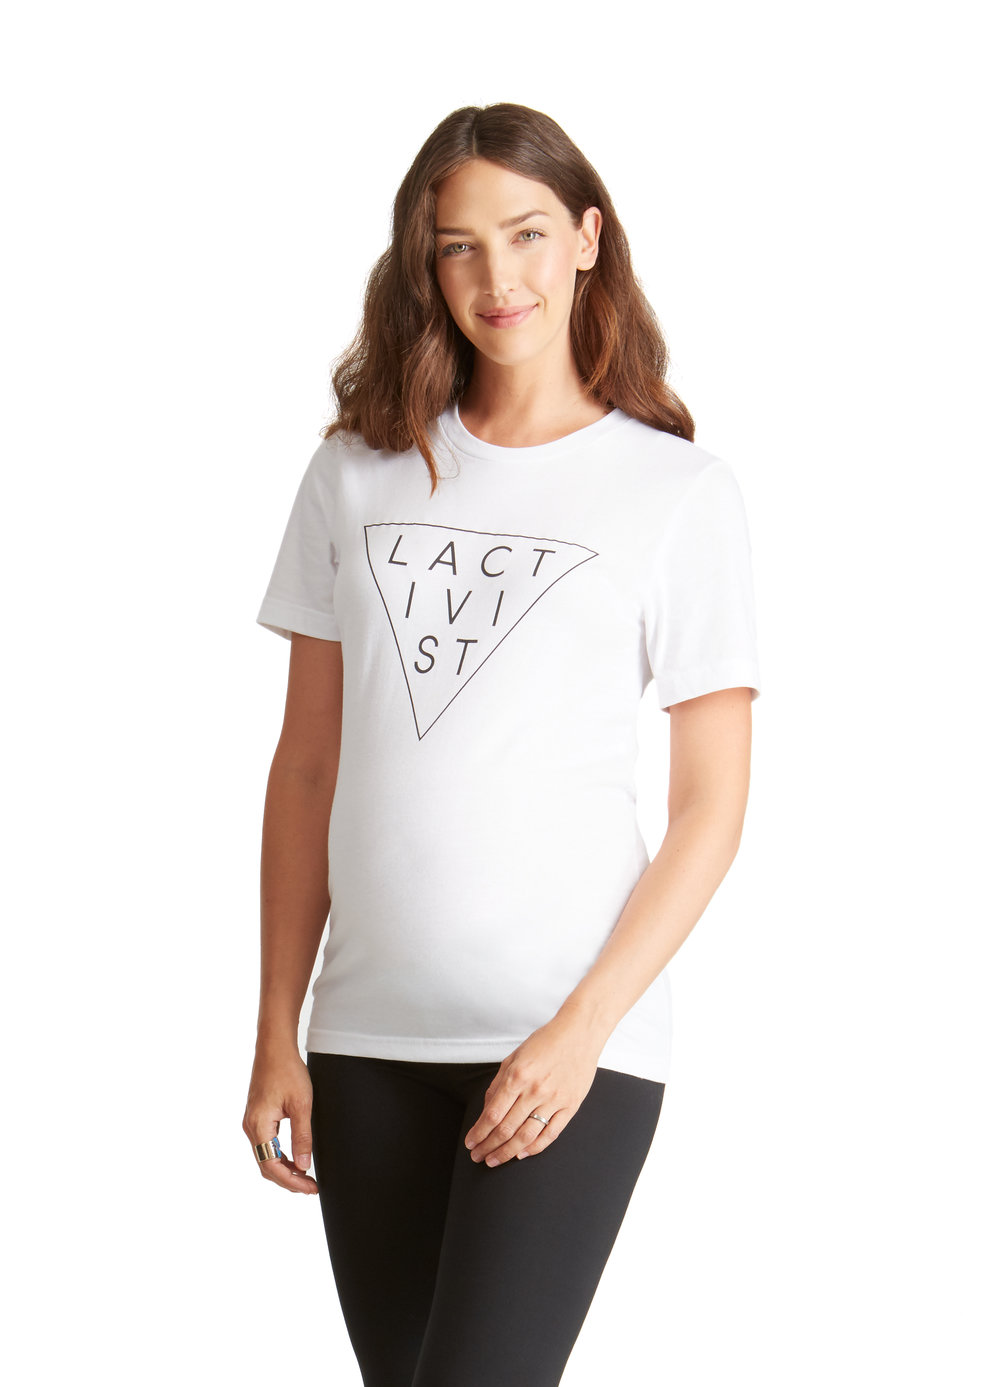 Lactivist T-Shirt • A Mother Is, the blog All For Mom •Ingrid & Isabel